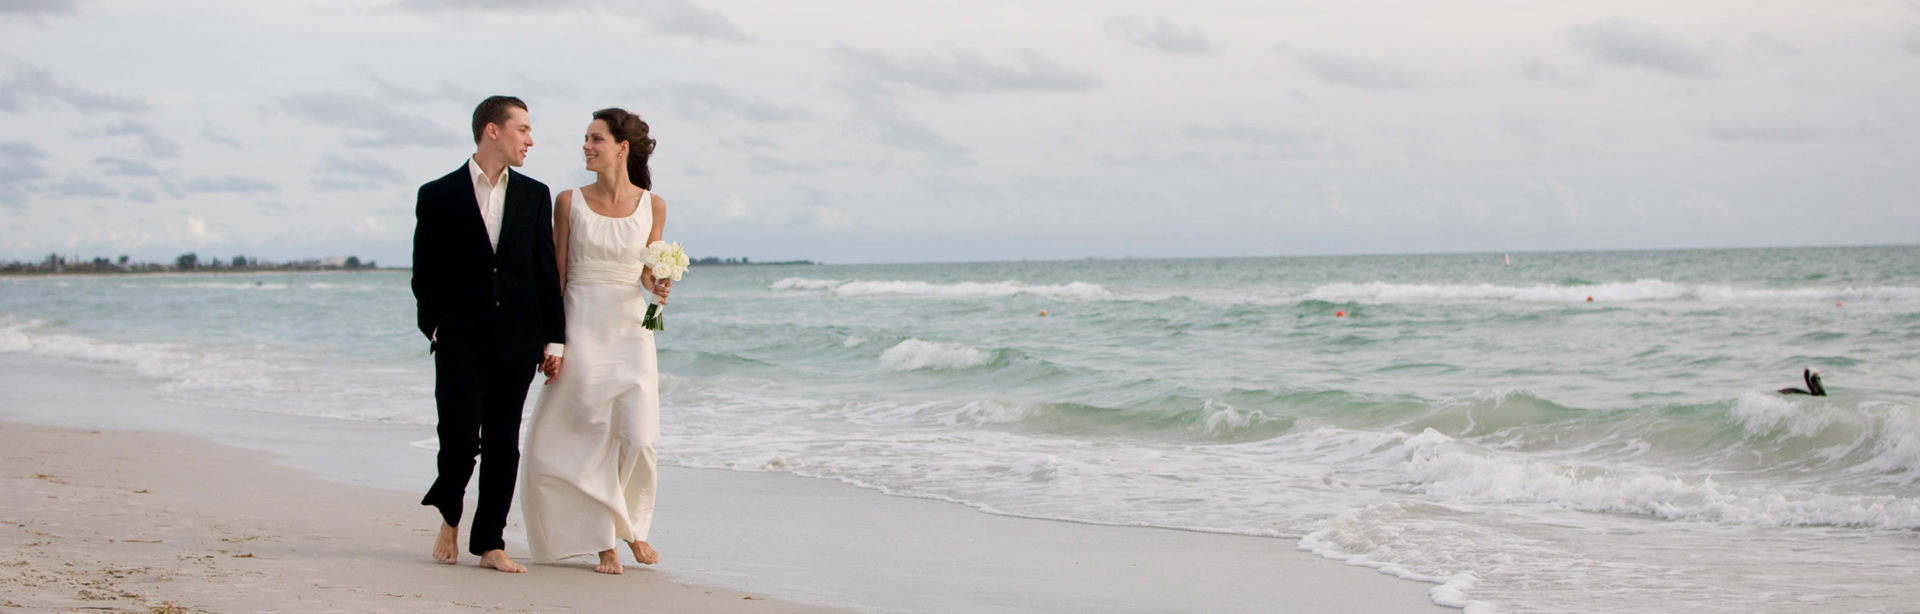 wedding-photo-session-beach-wedding-florida